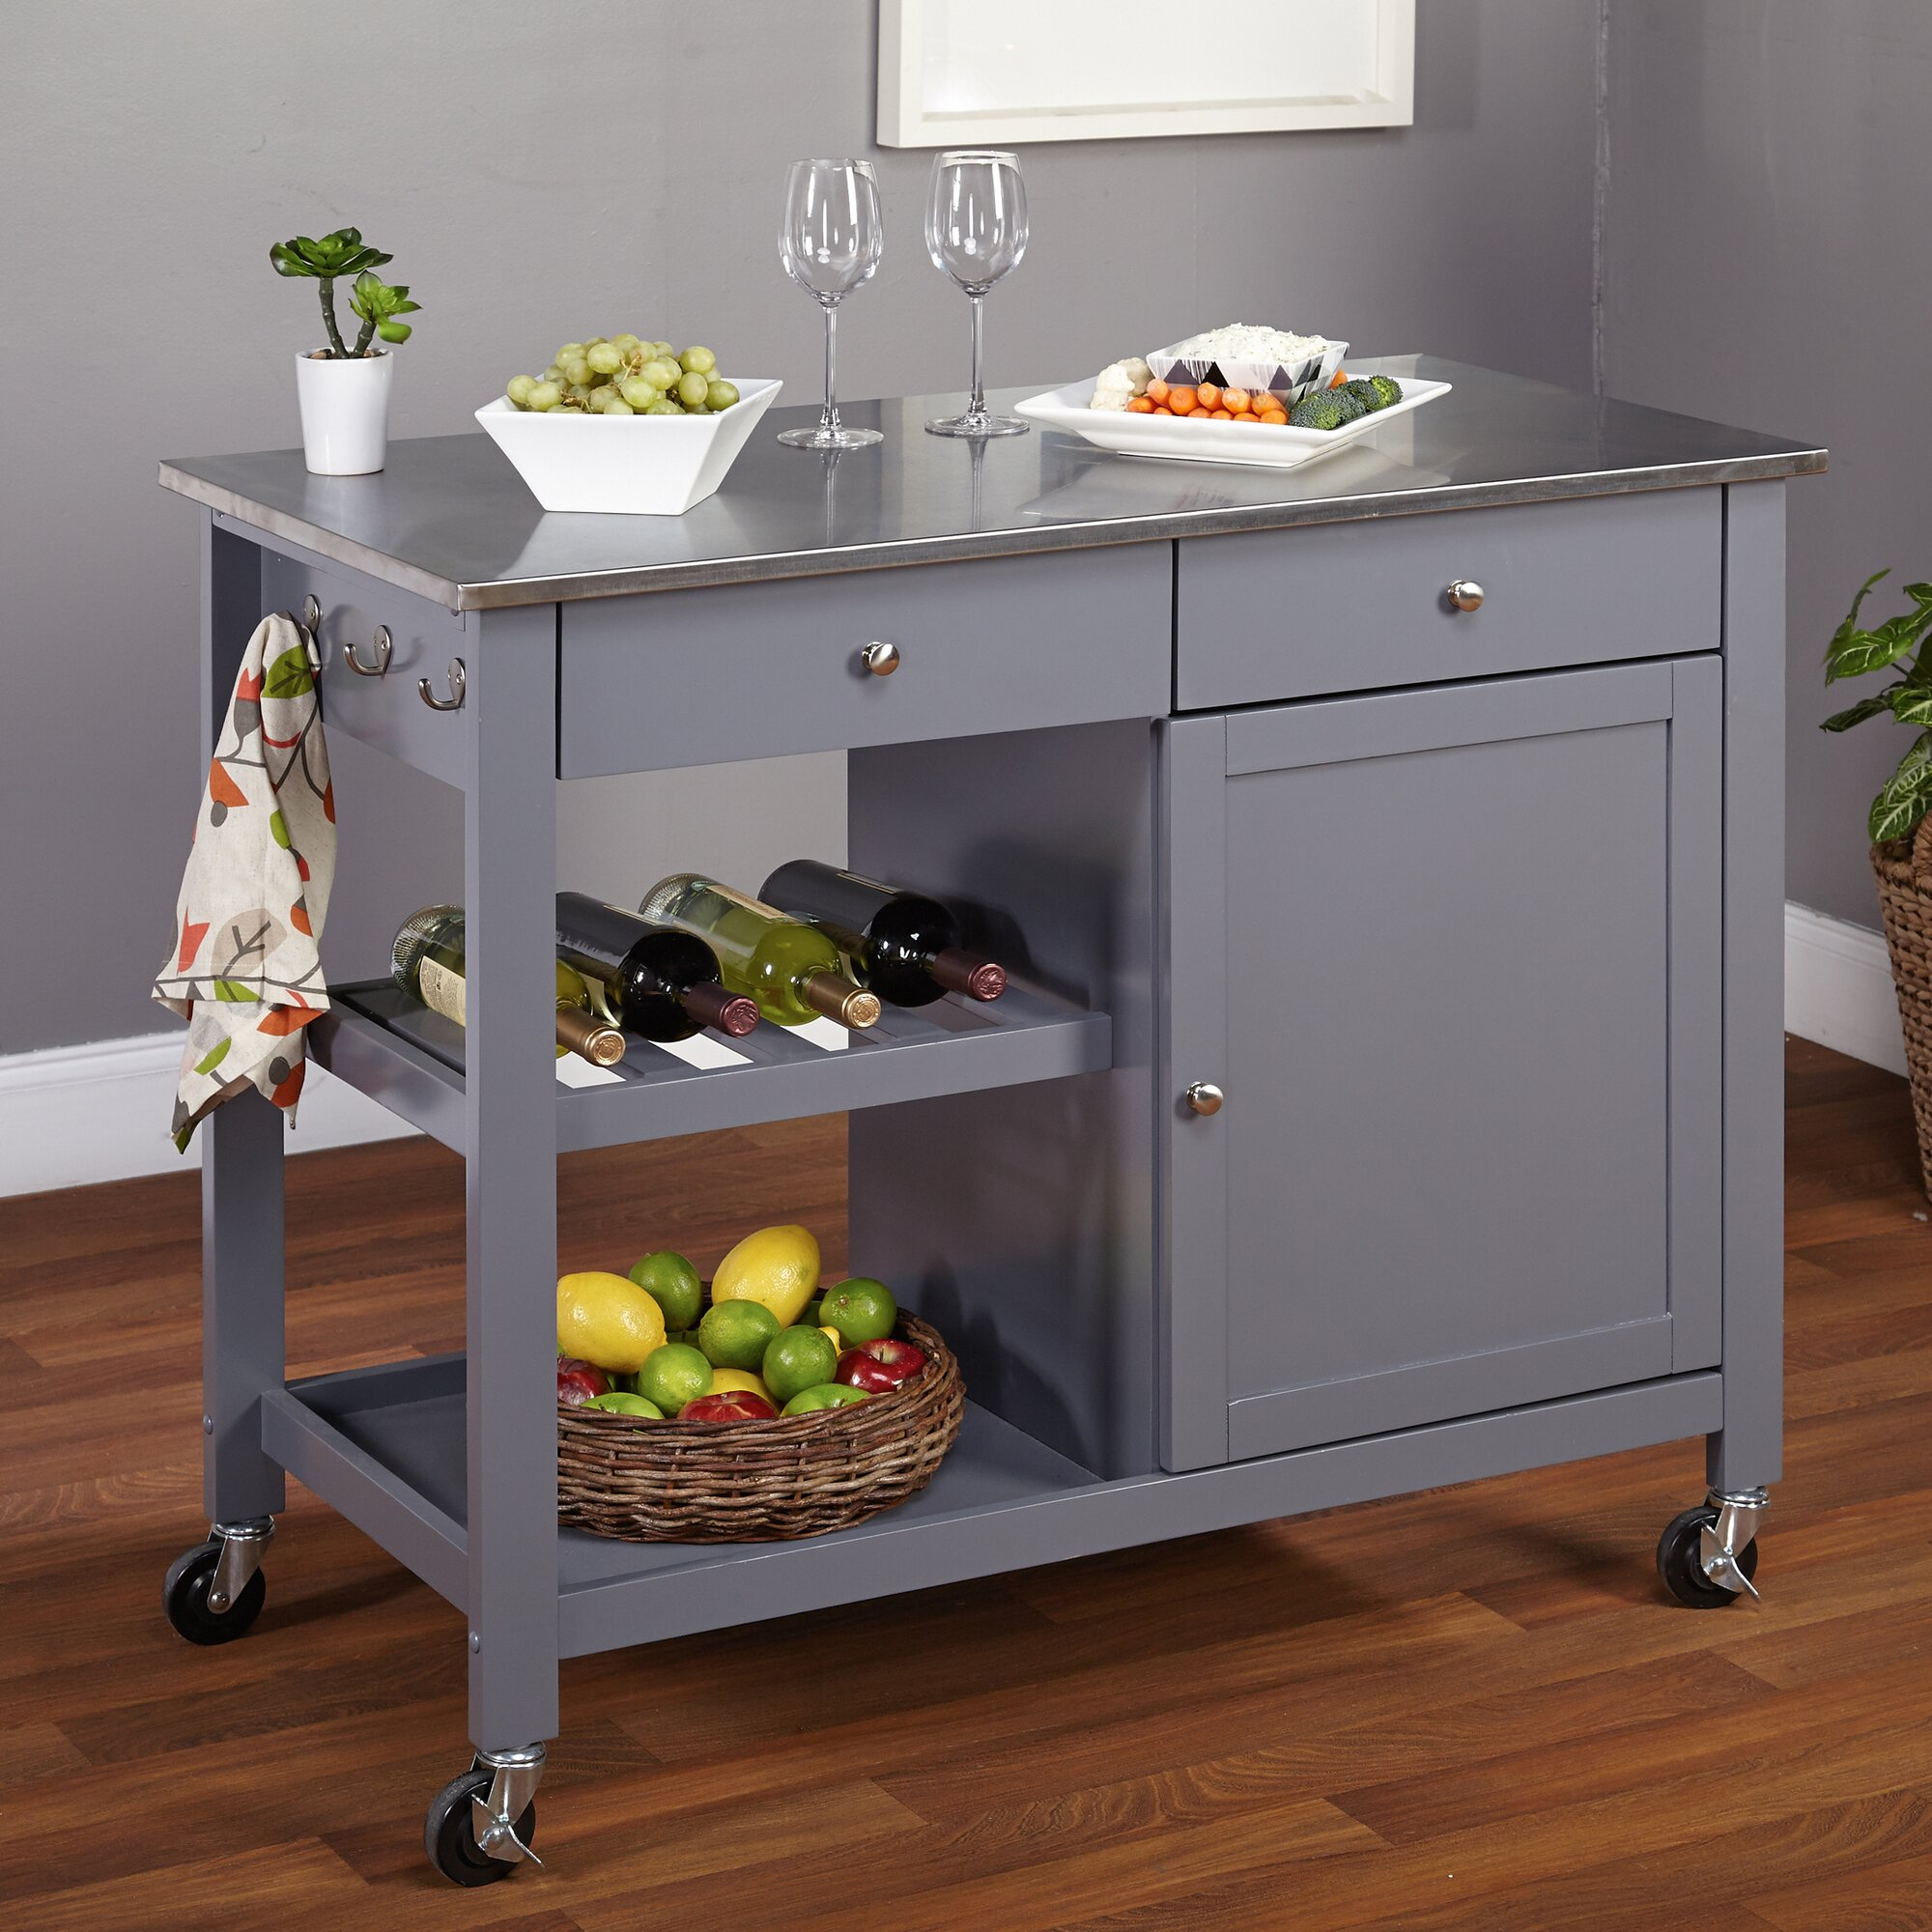 Kitchen Island Trolley Kitchen Island Trolley Ebay With Kitchen